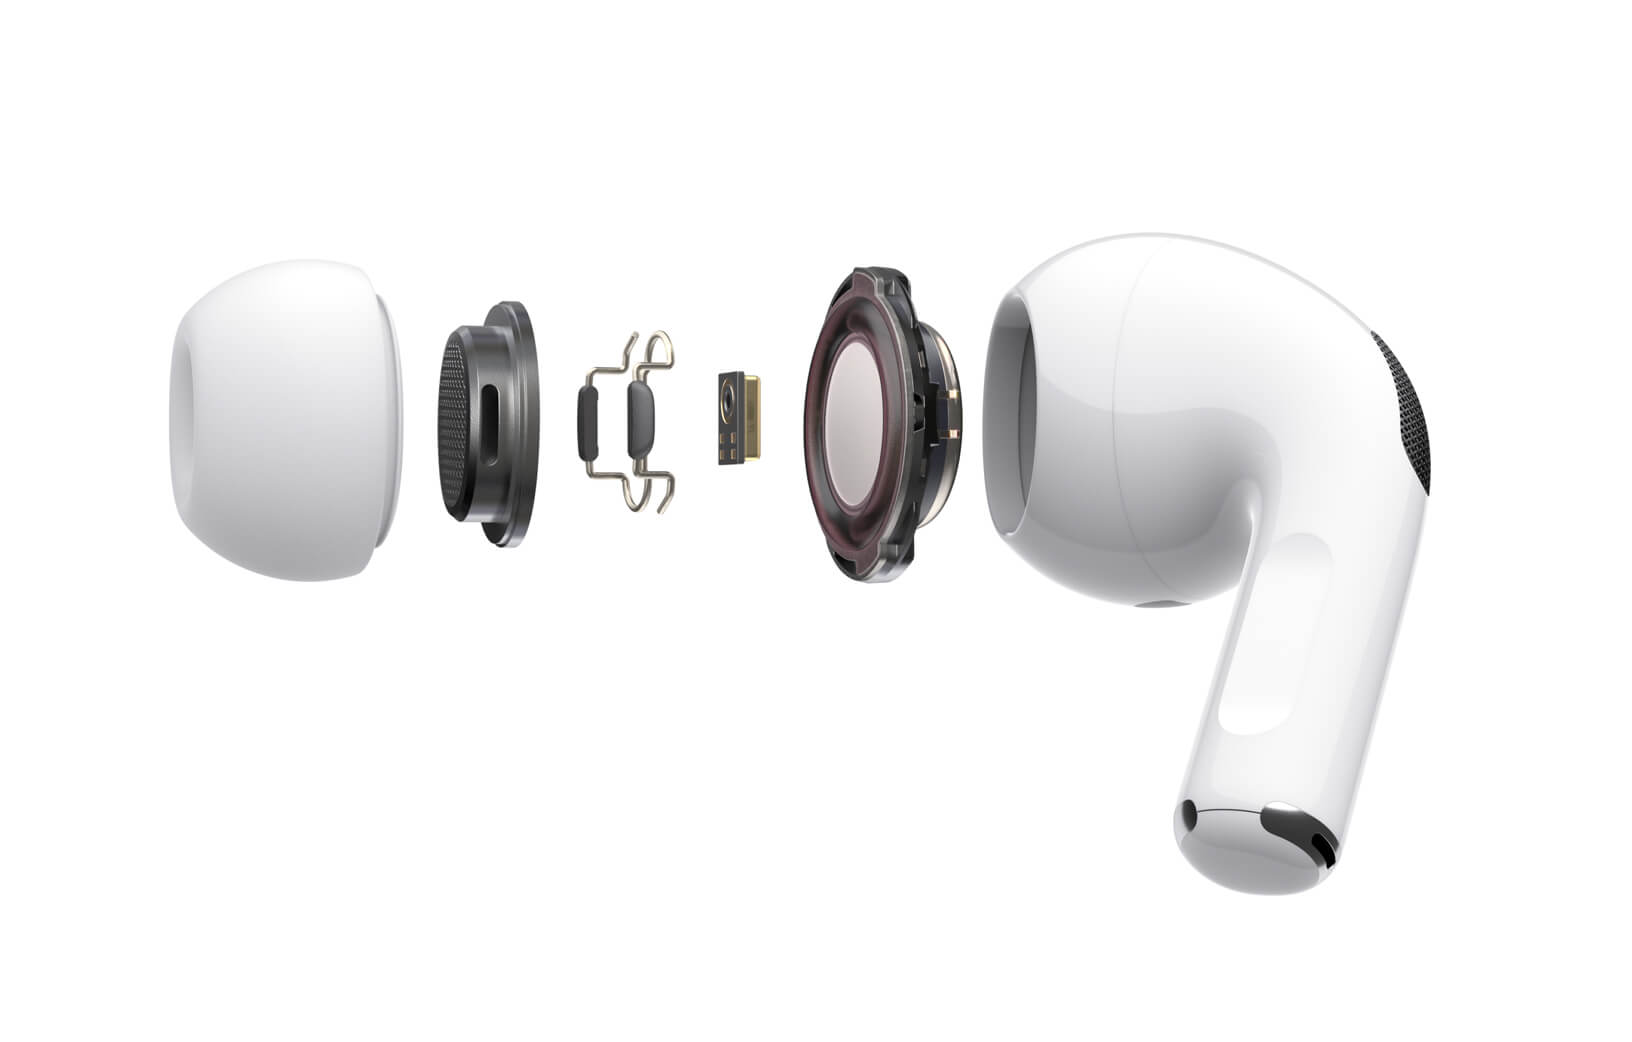 airpods pro announced